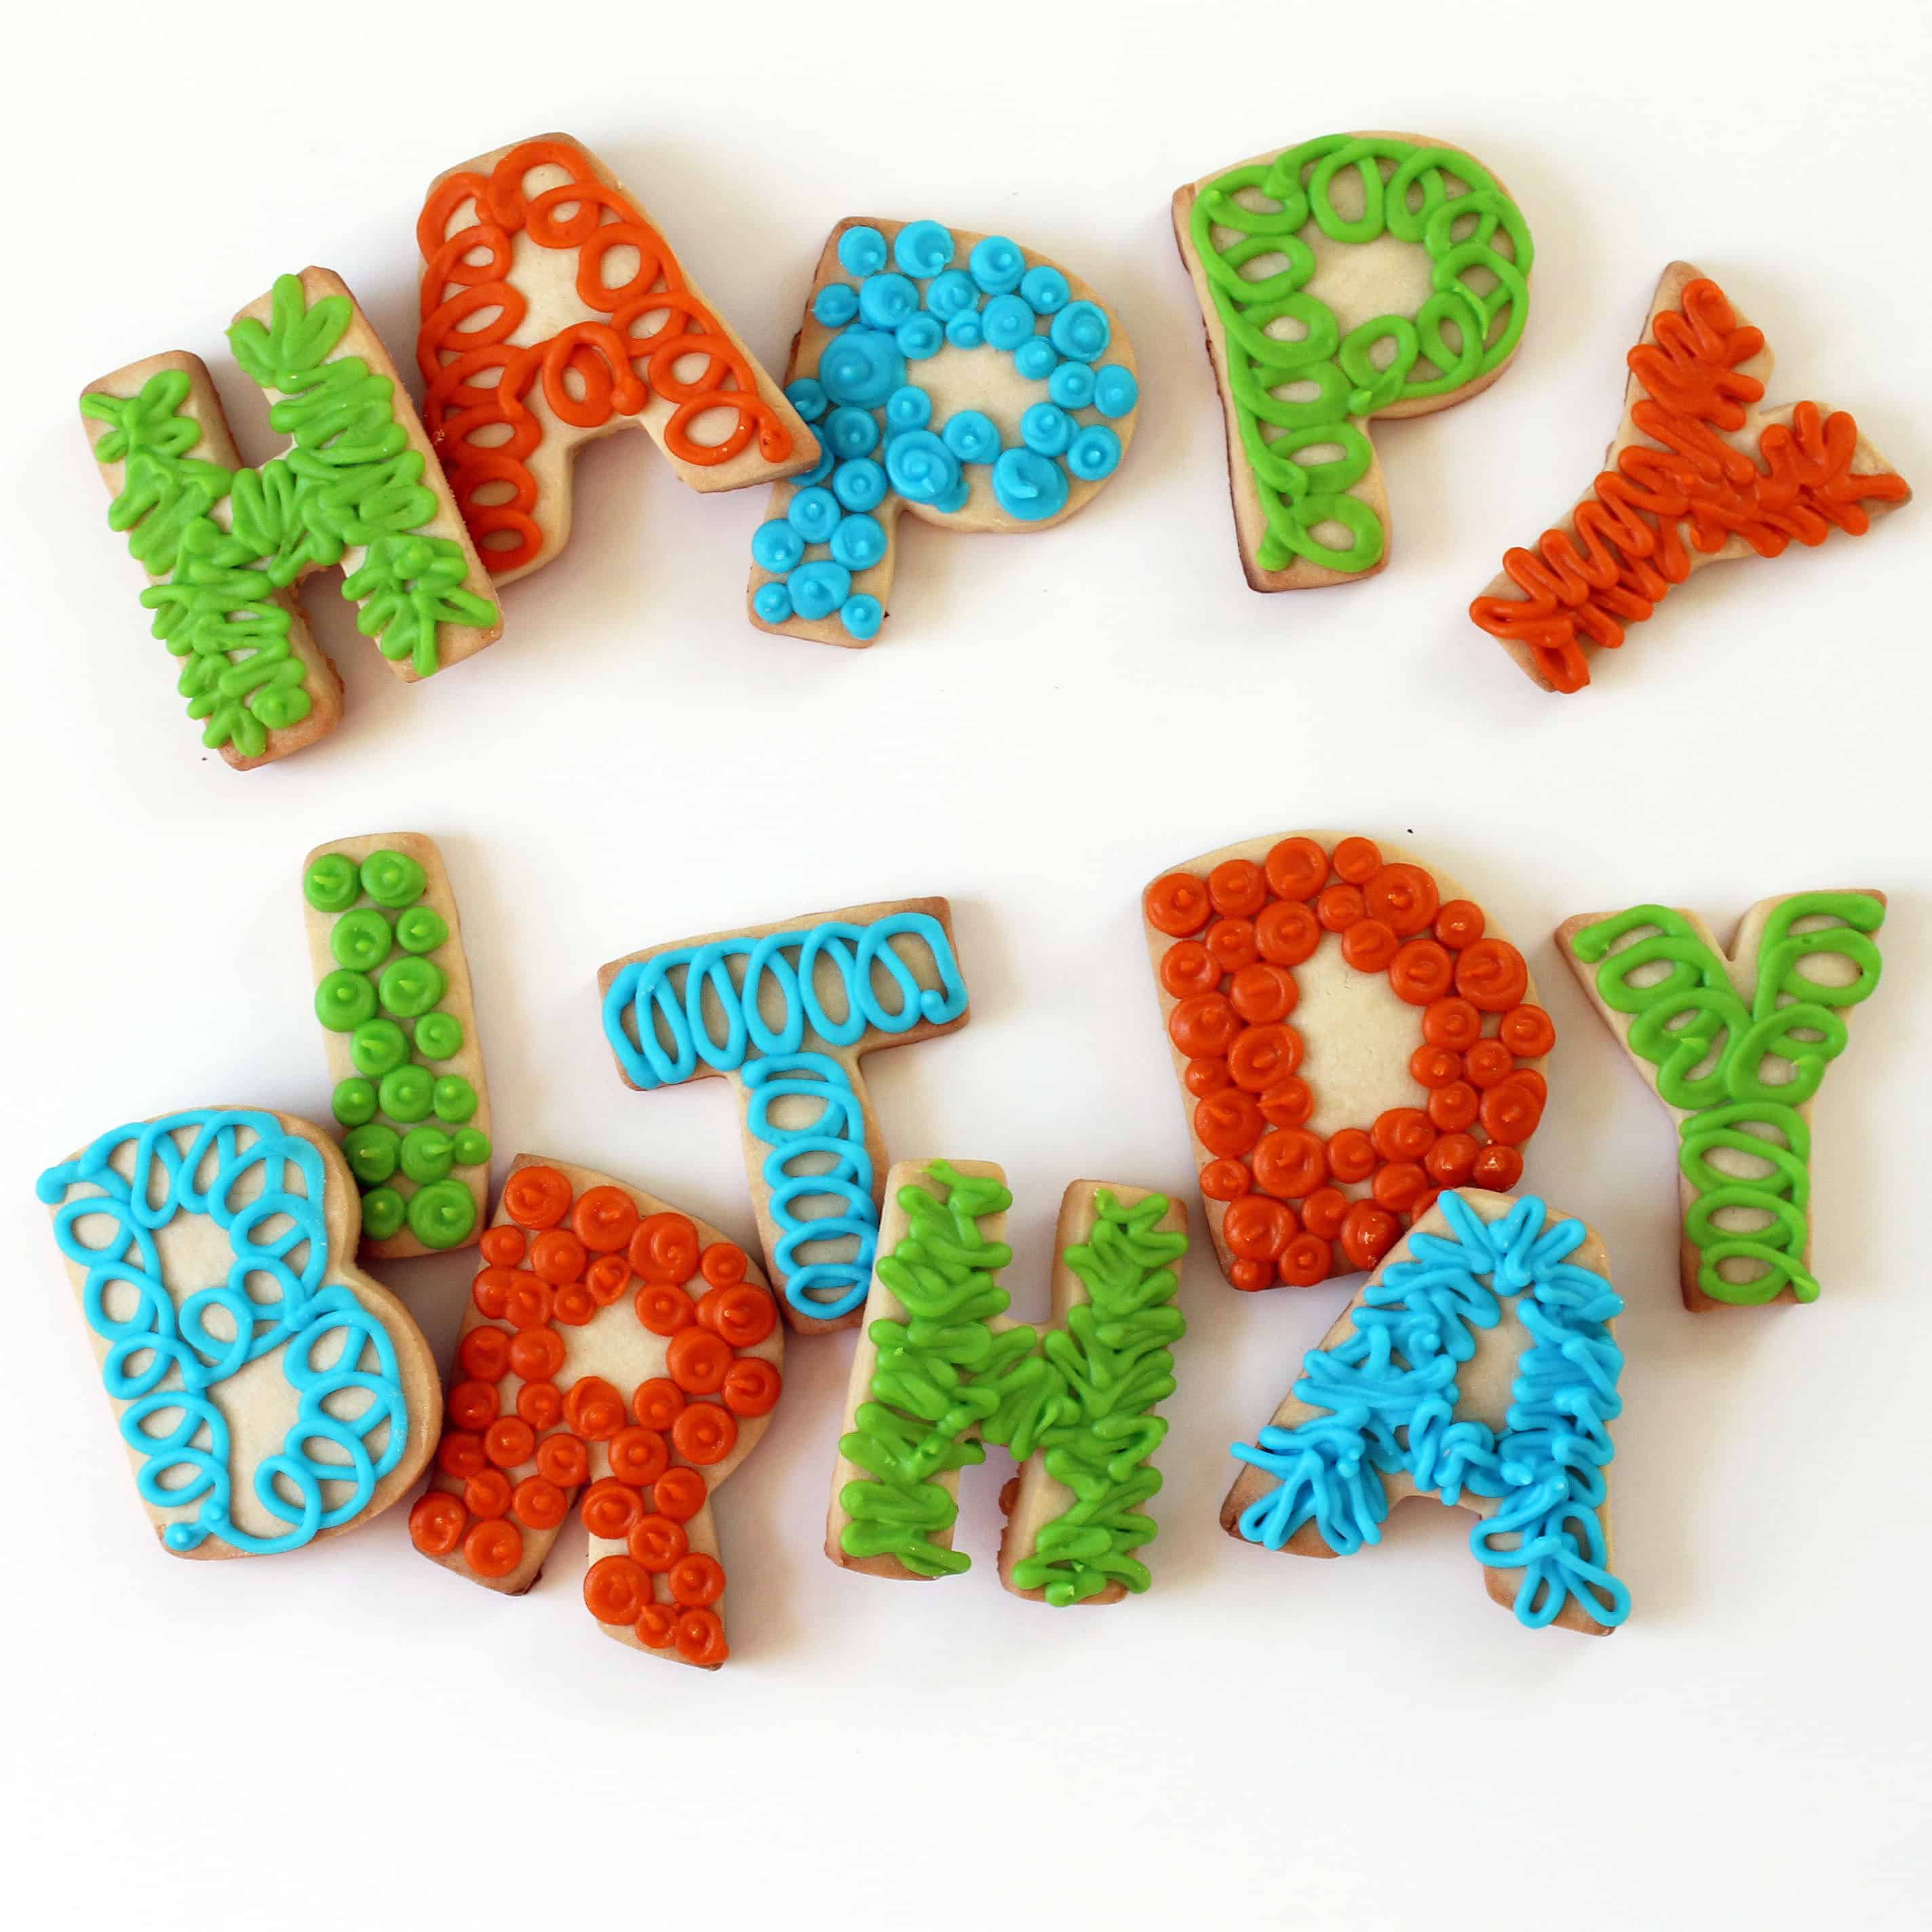 Spell out HAPPY BIRTHDAY LETTER COOKIES for a fun homemade birthday gift idea for any age. Decorate cookies with royal icing.